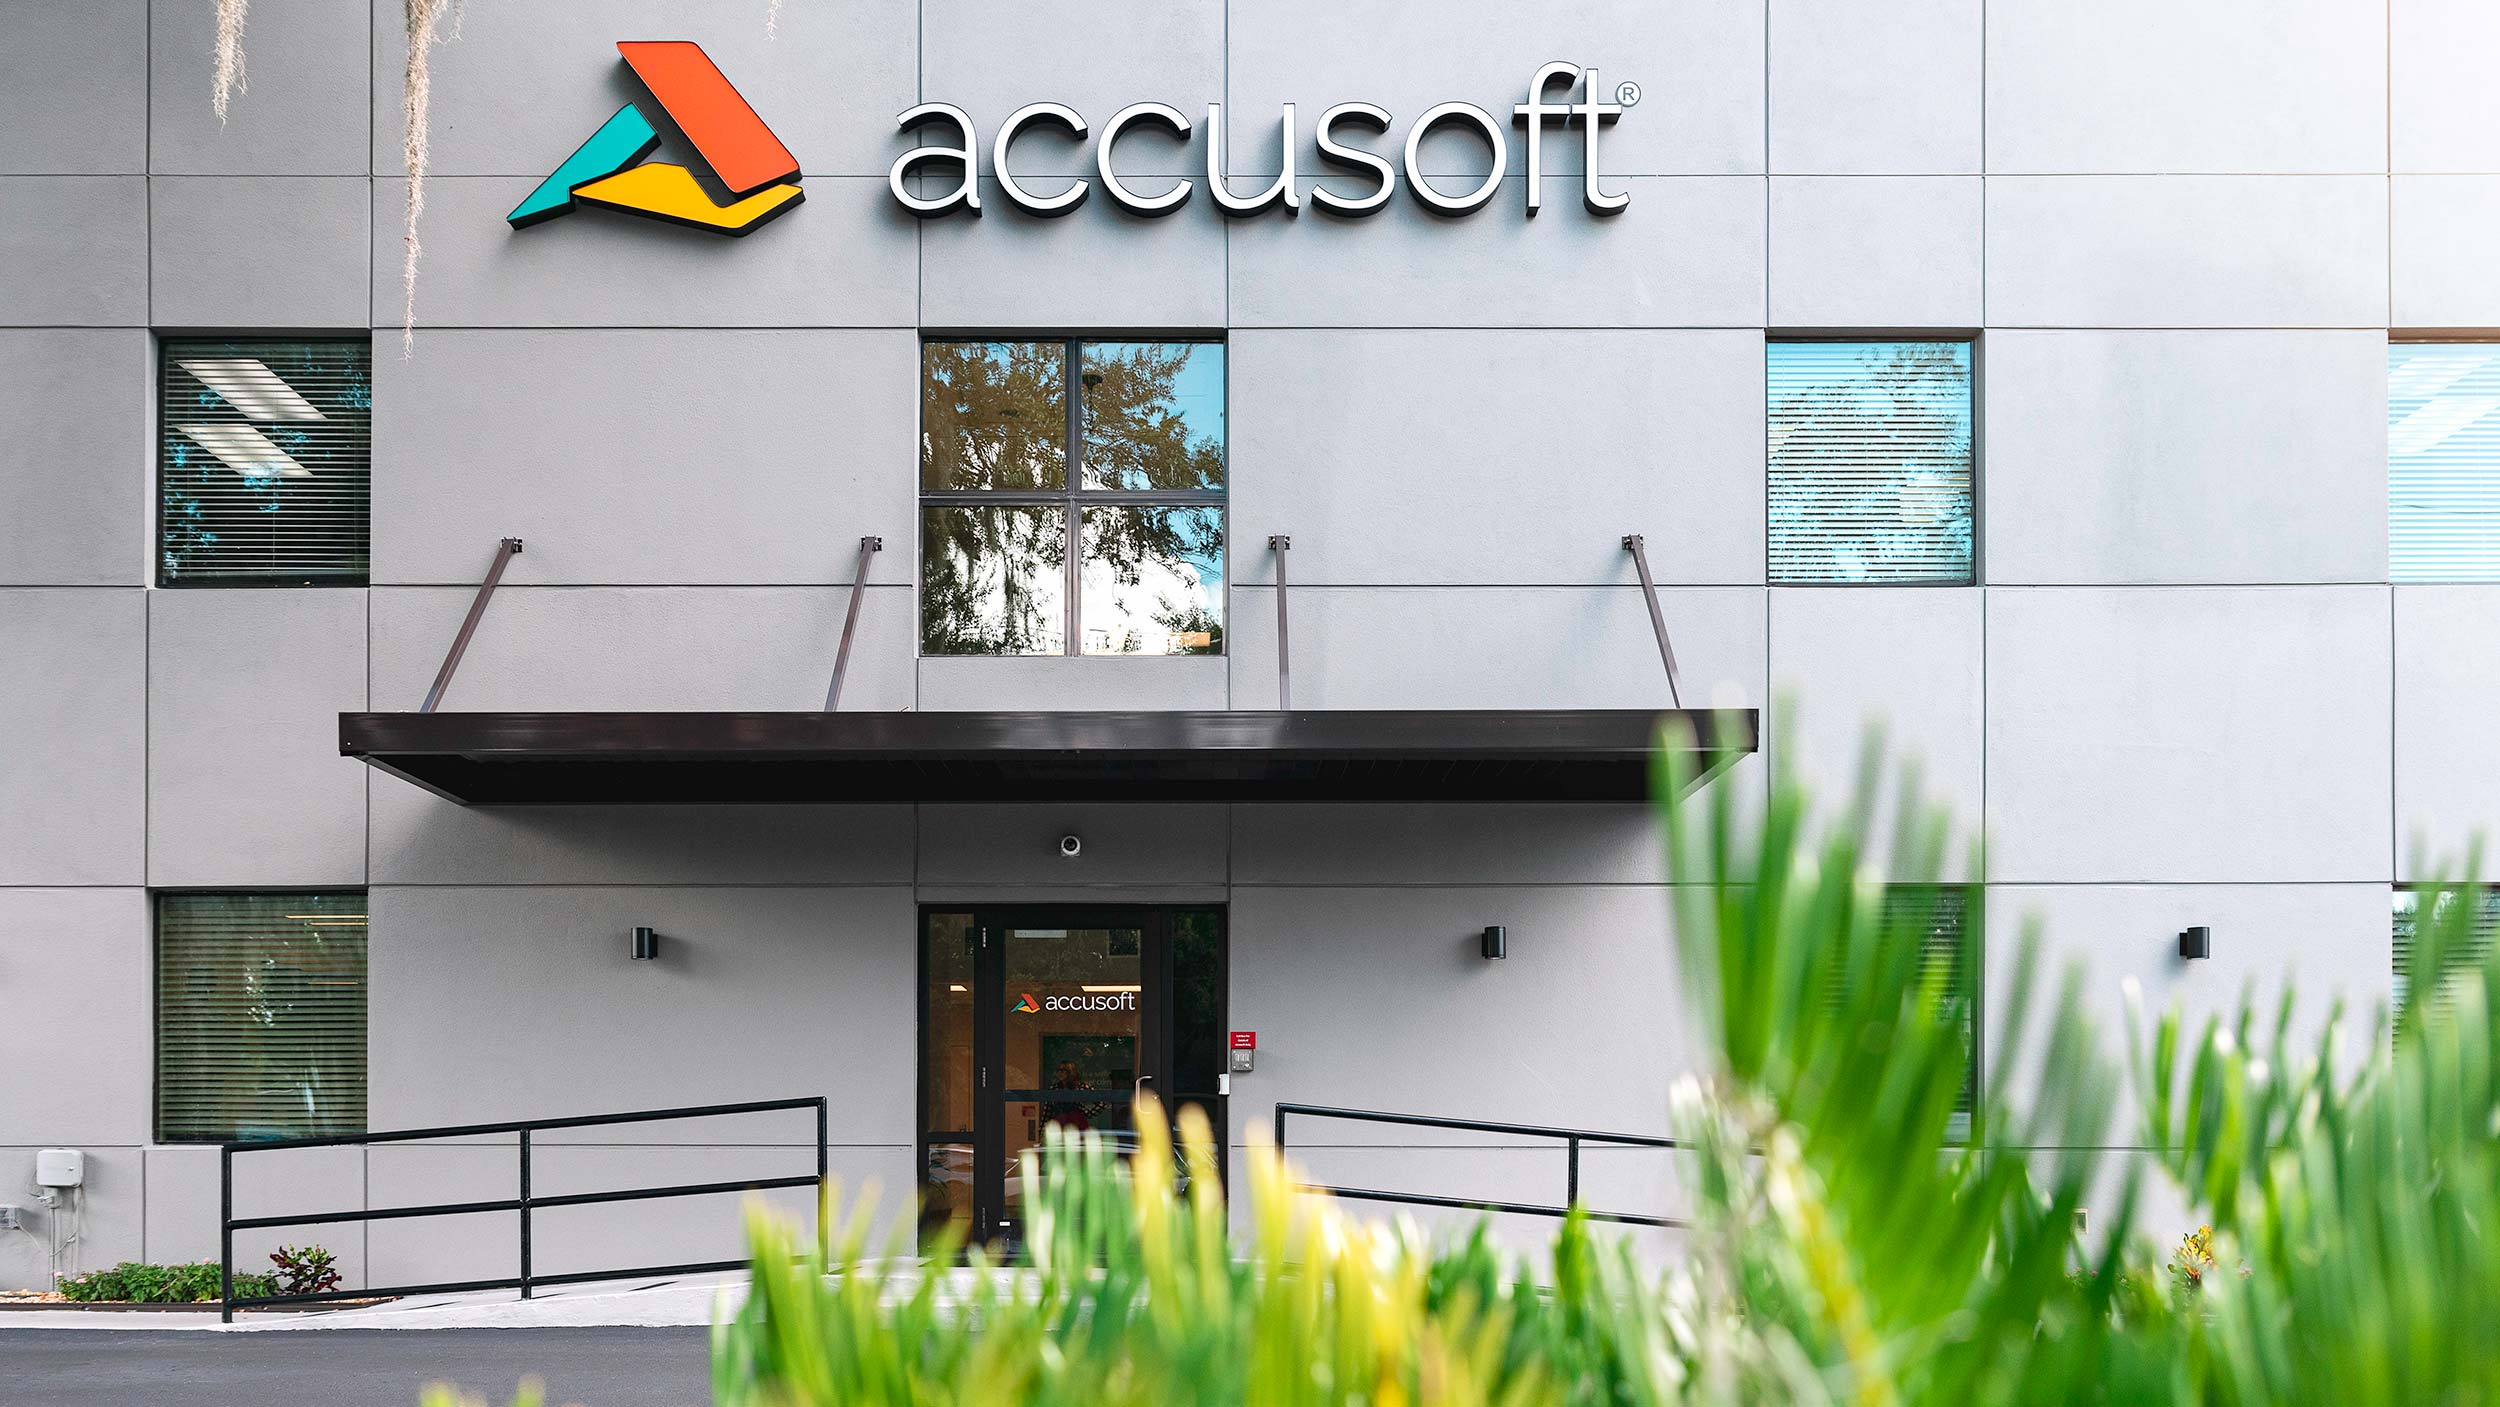 accusoft building exterior with sign